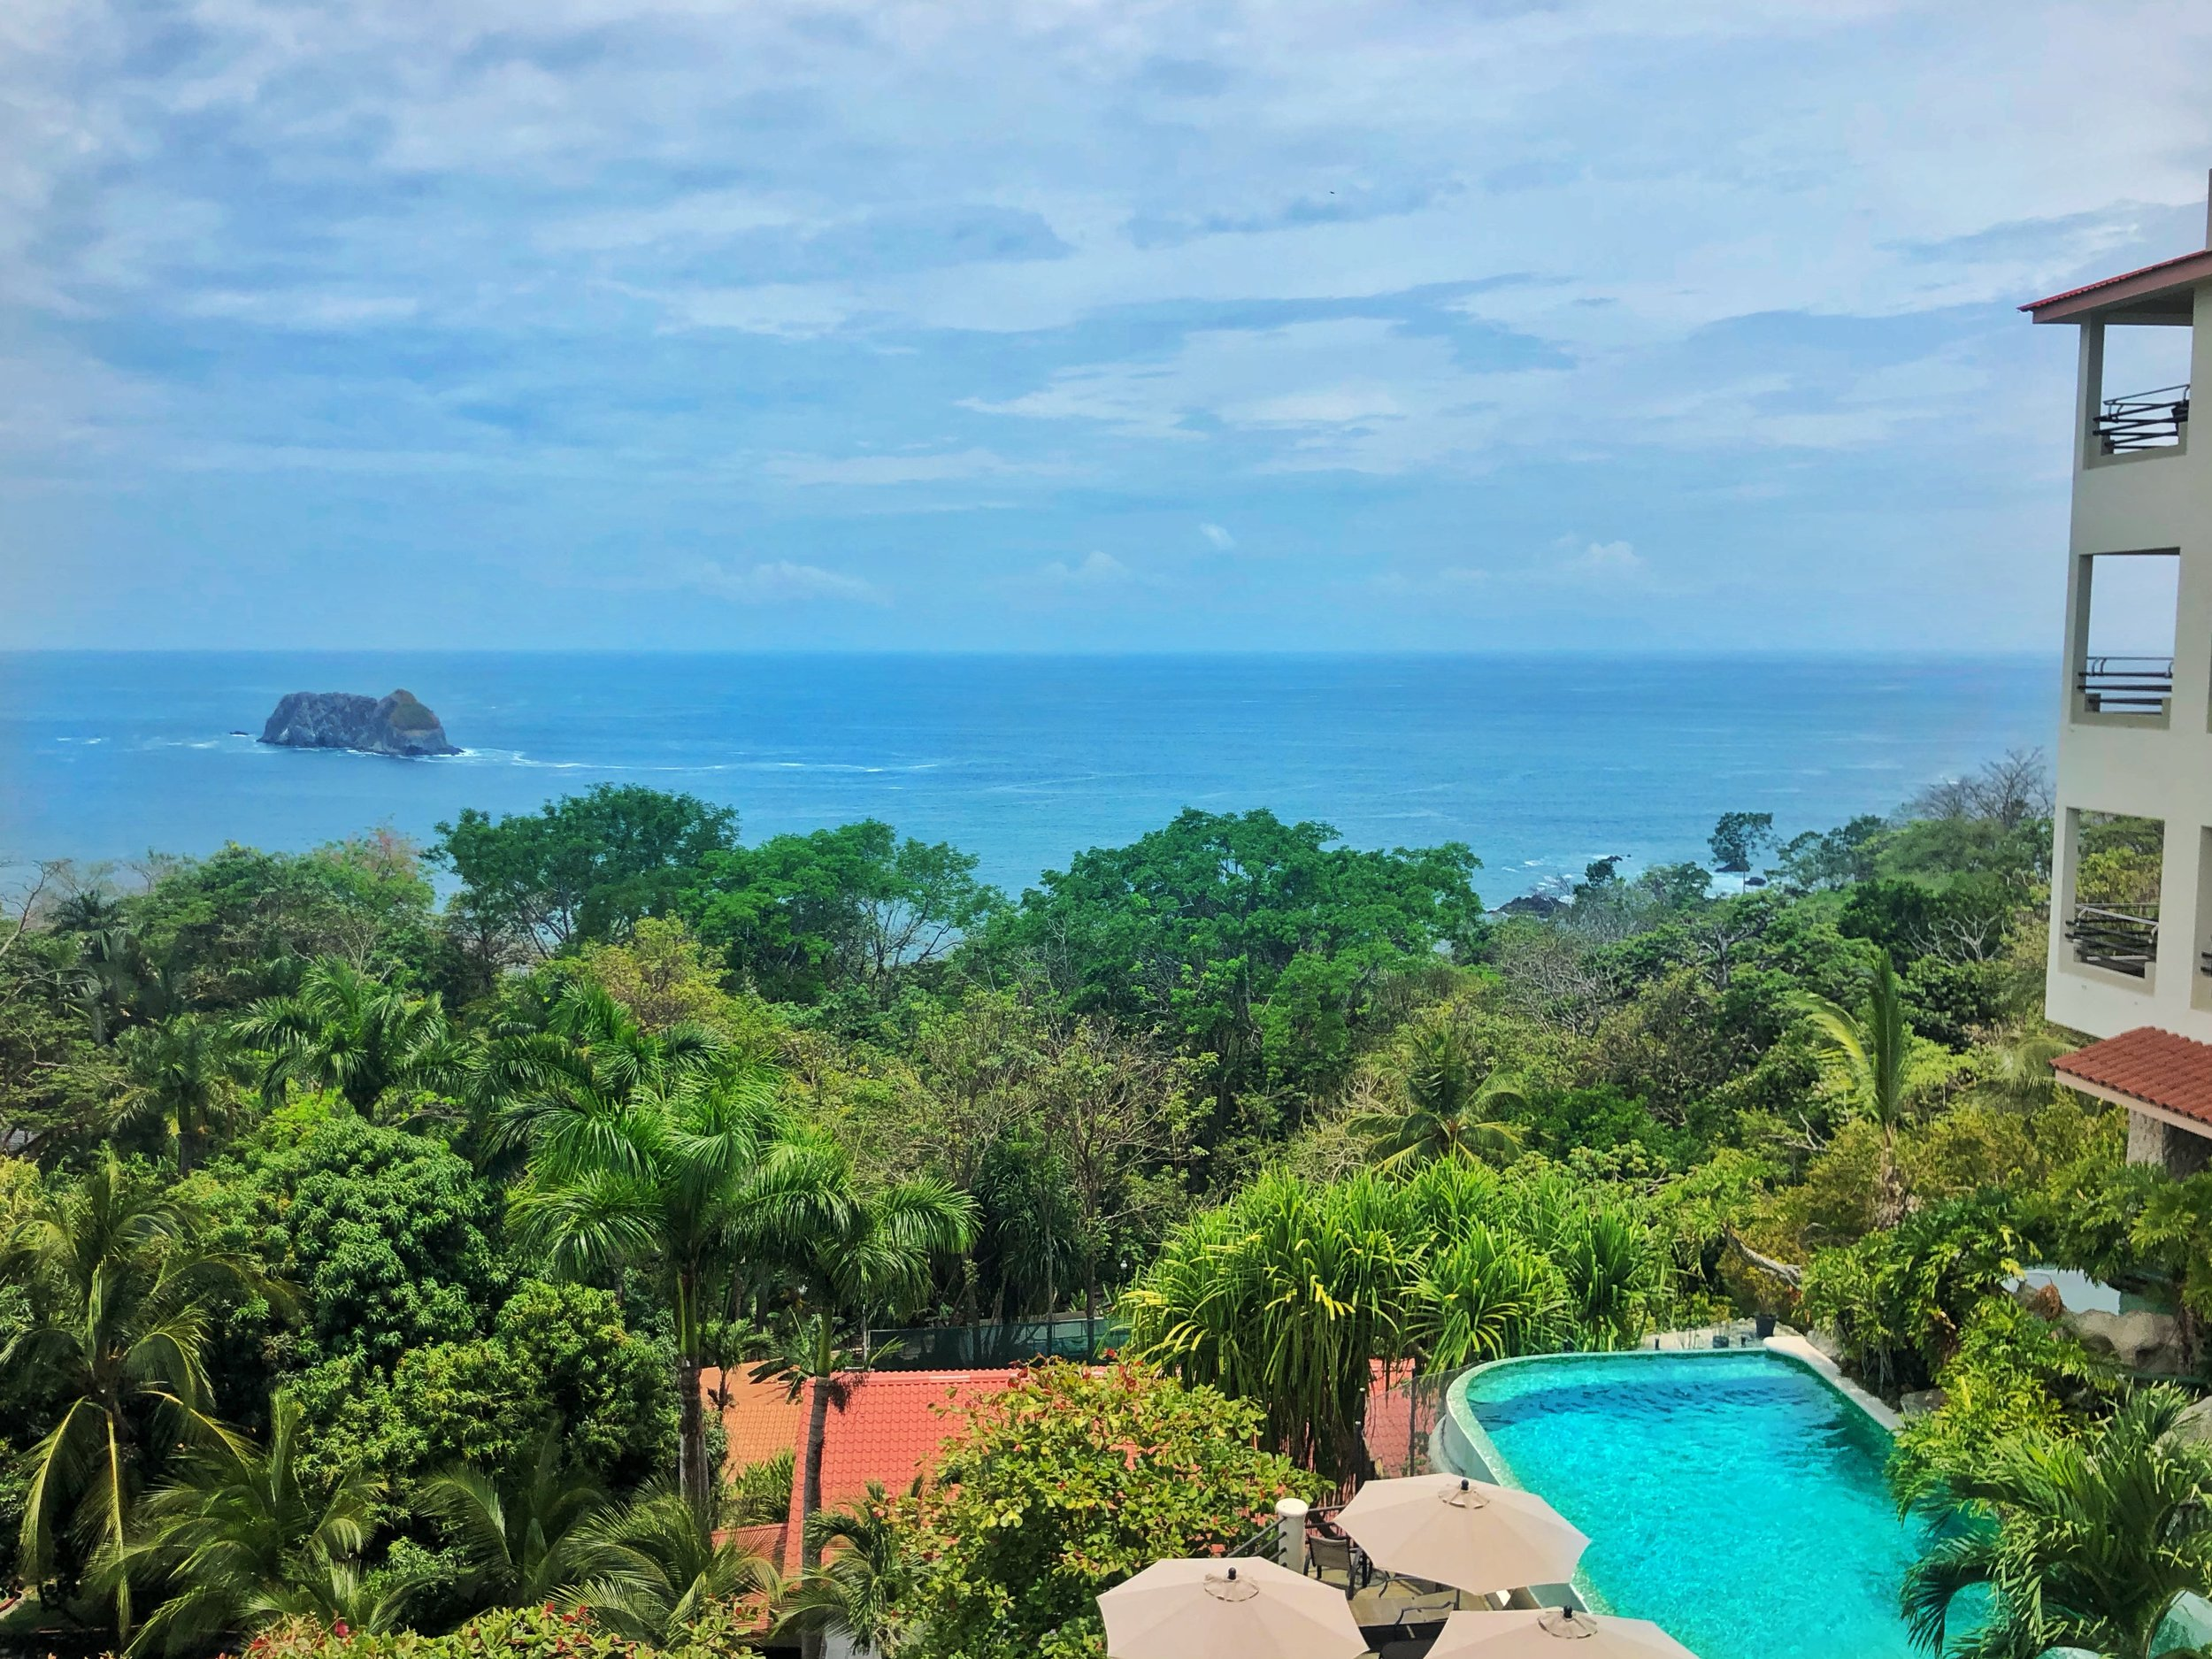 View from my balcony In Costa Rica